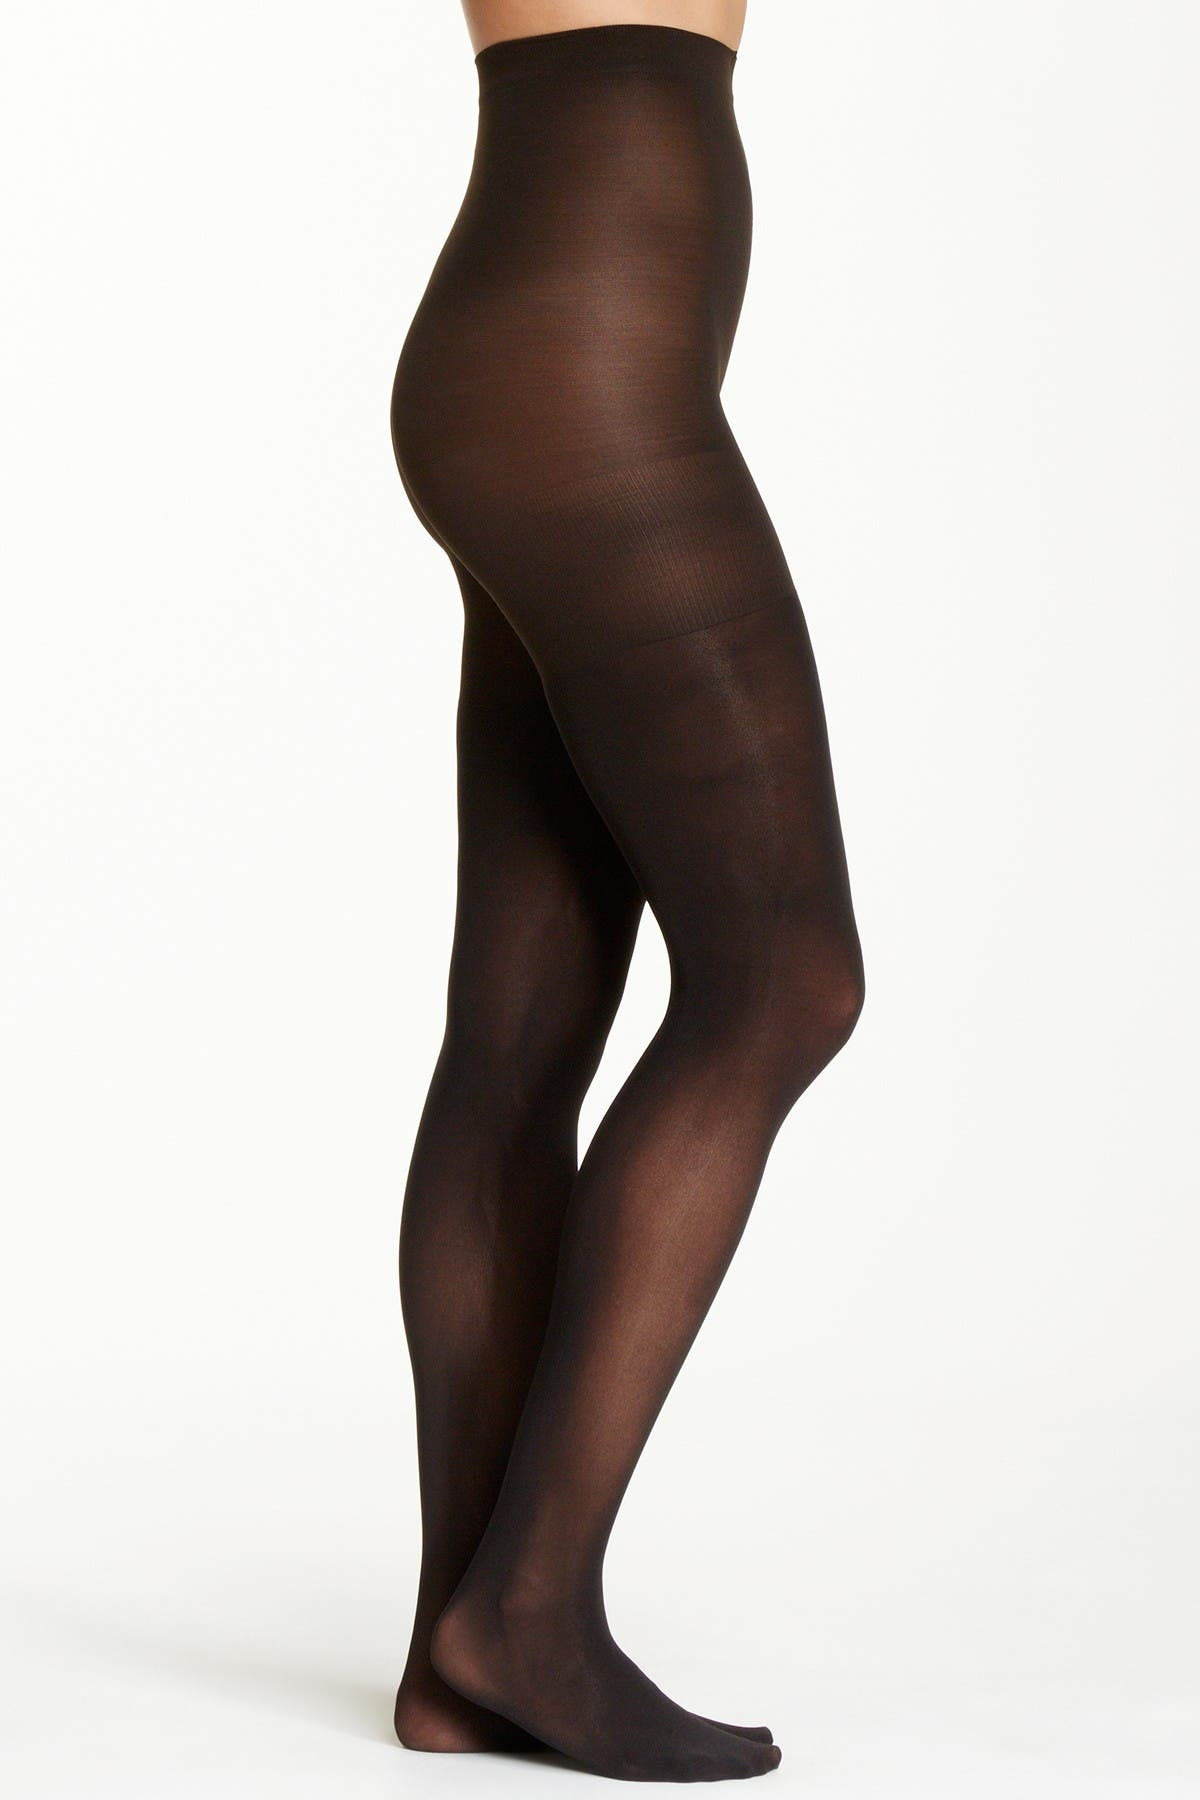 Image of SPANX Shaping Tights